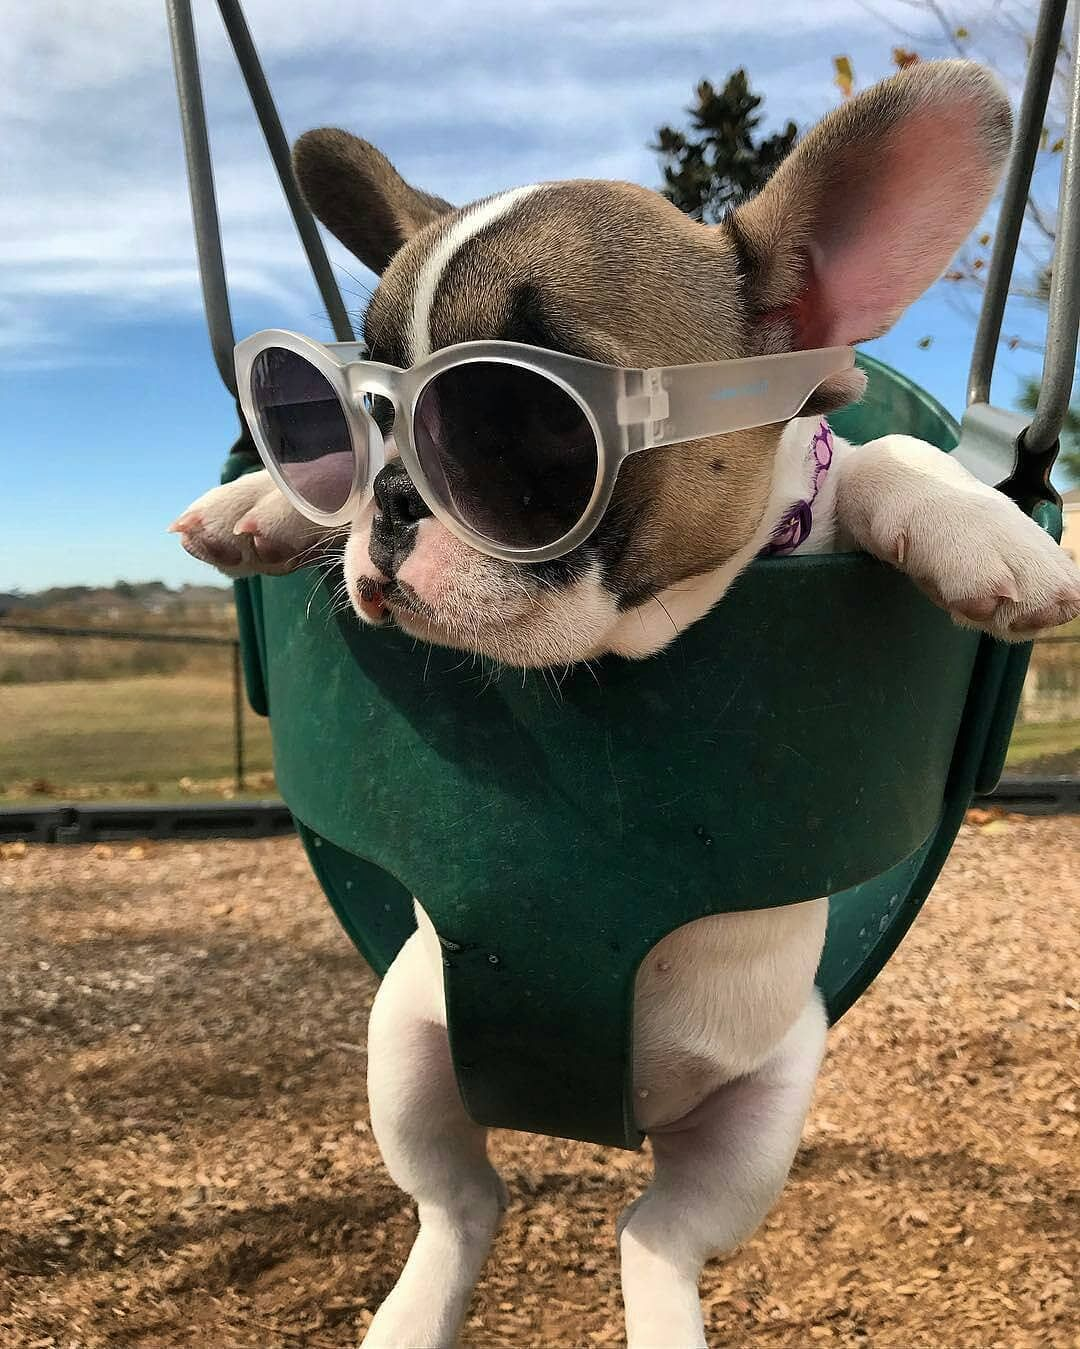 French Bulldog On Instagram Let The Sunday Begin Frenchiegiorgia Cute Animals Images Cute Animals Cute Animal Pictures